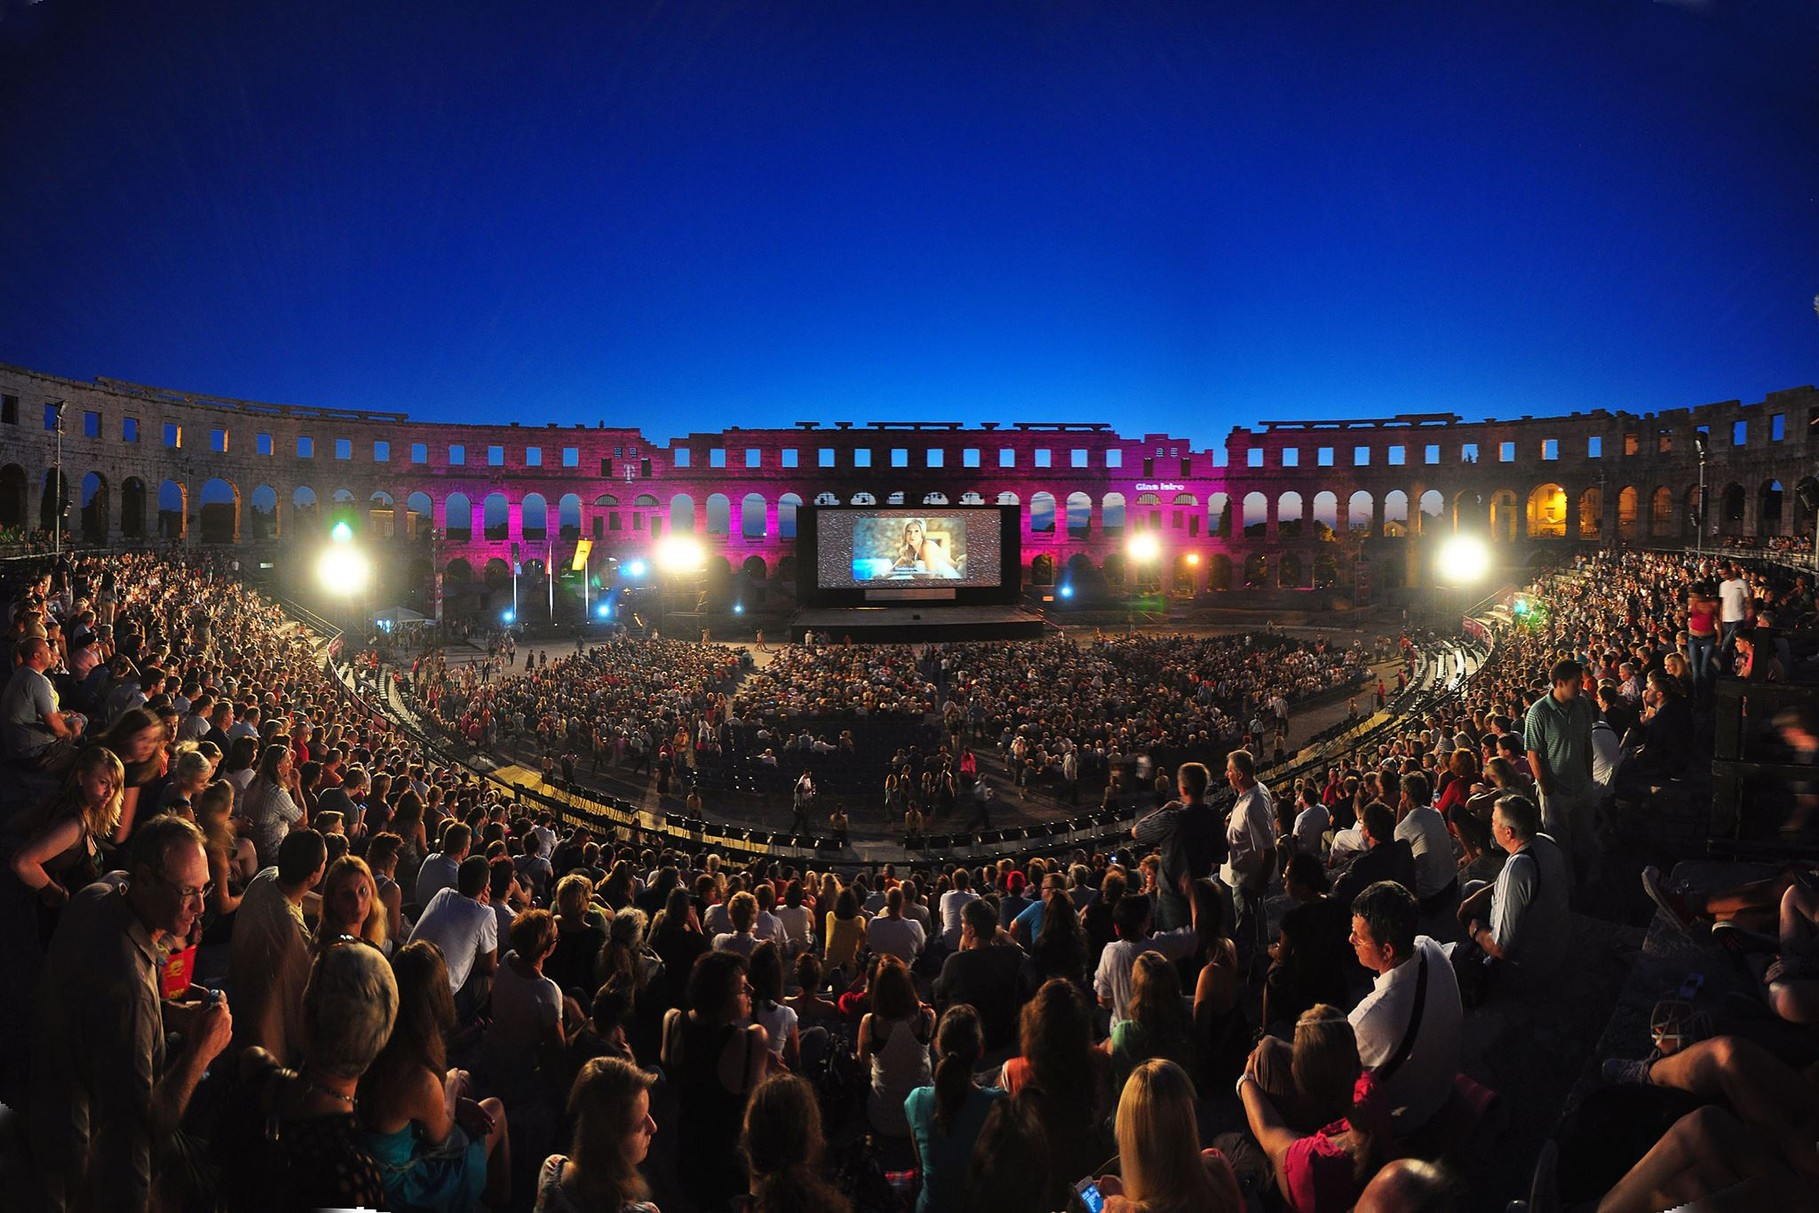 The Arena during the Pula film festival from 12 to 26 July 2014